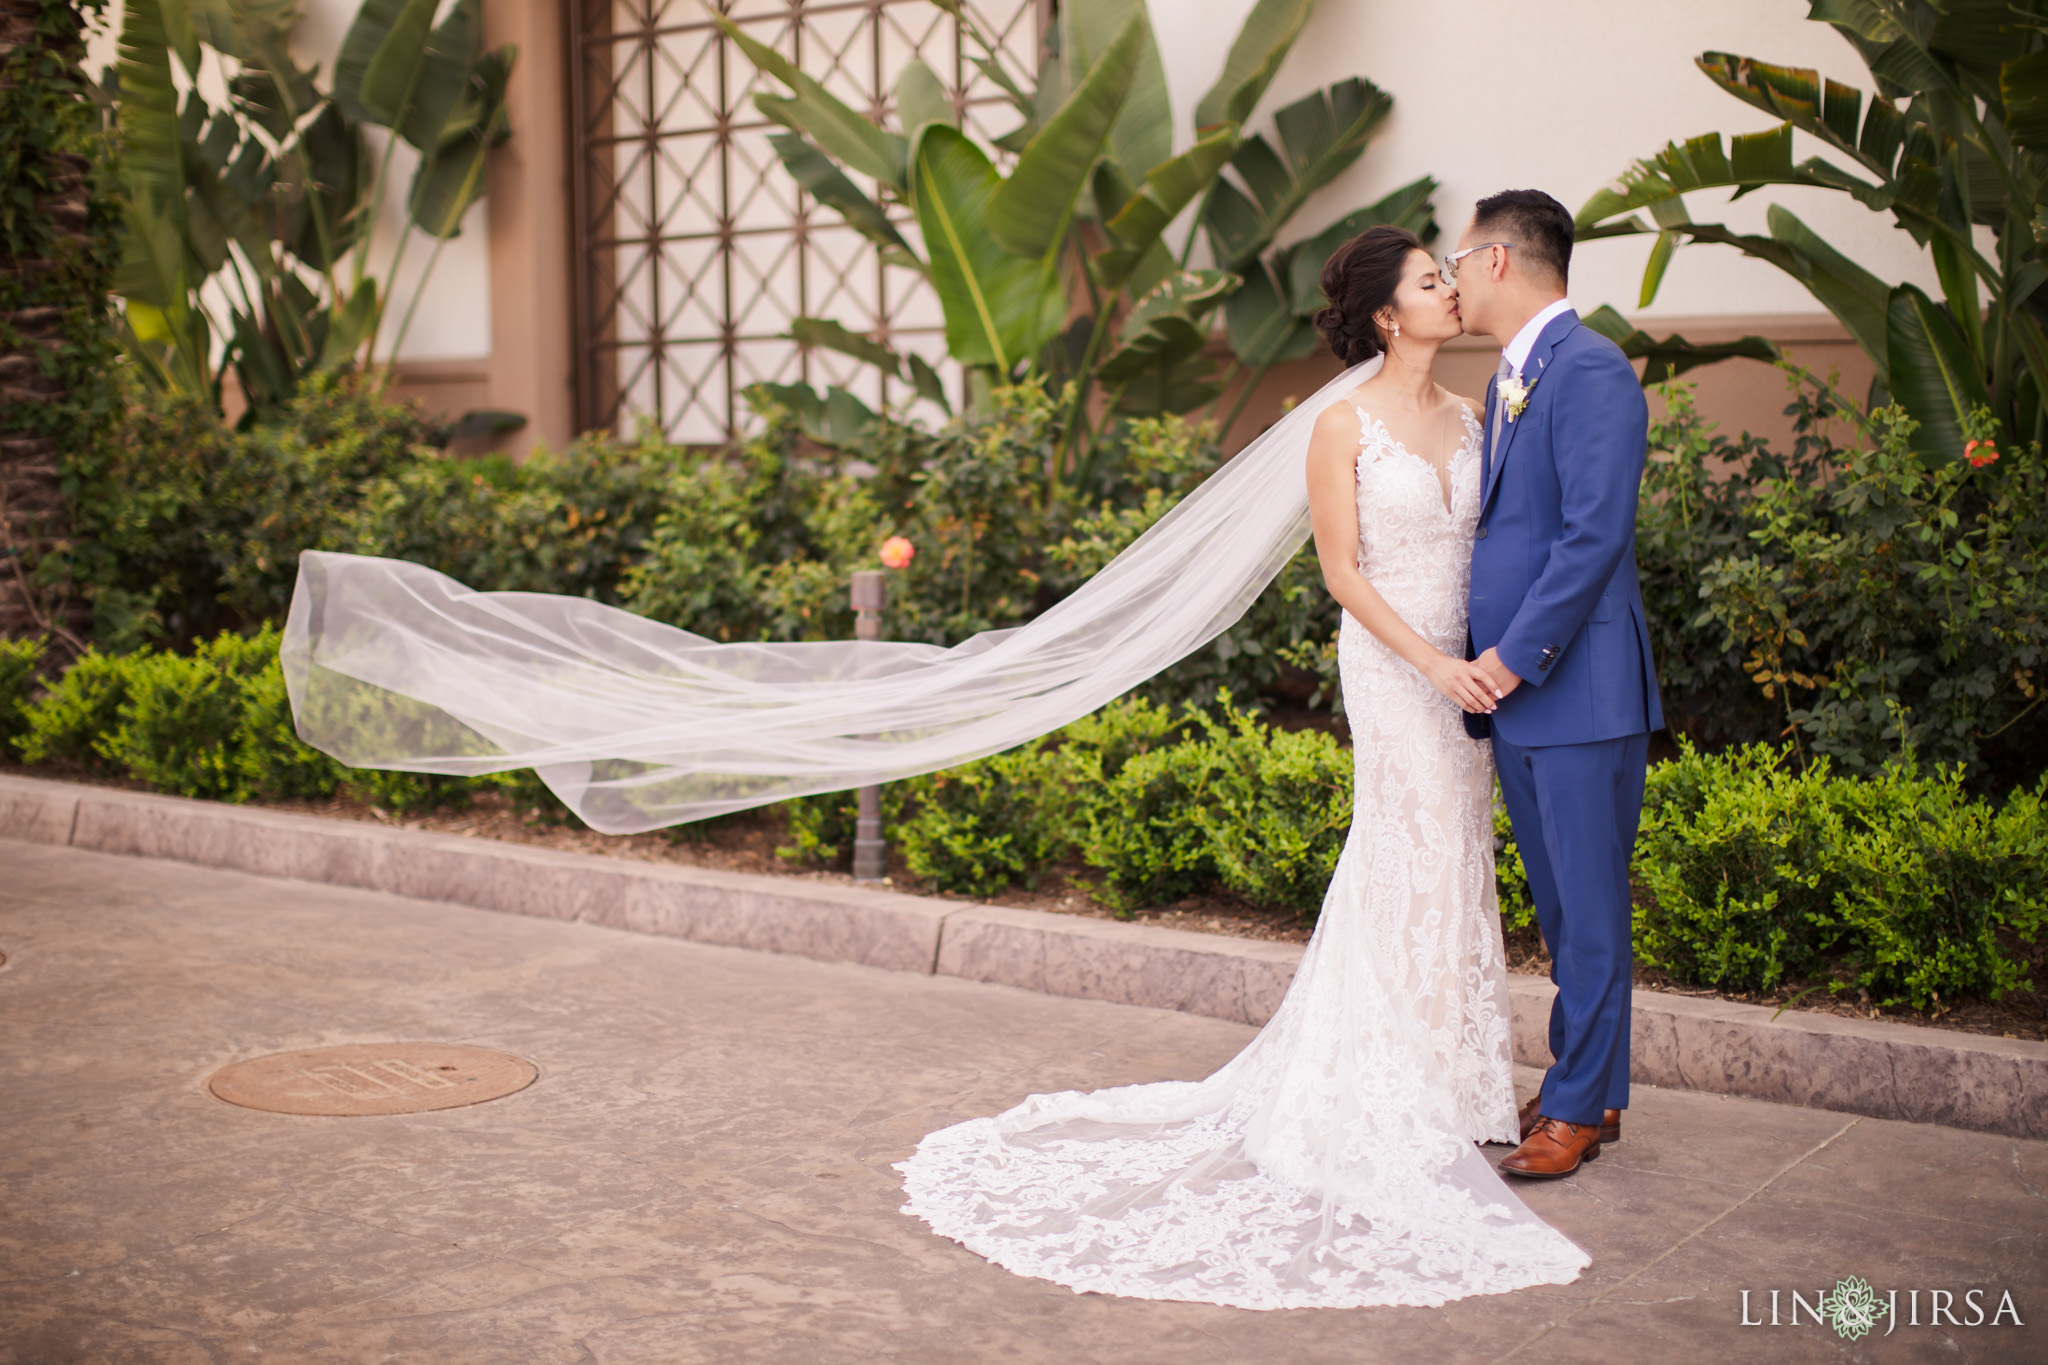 25 The Waterfront Beach Resort Huntington Beach Wedding Photography